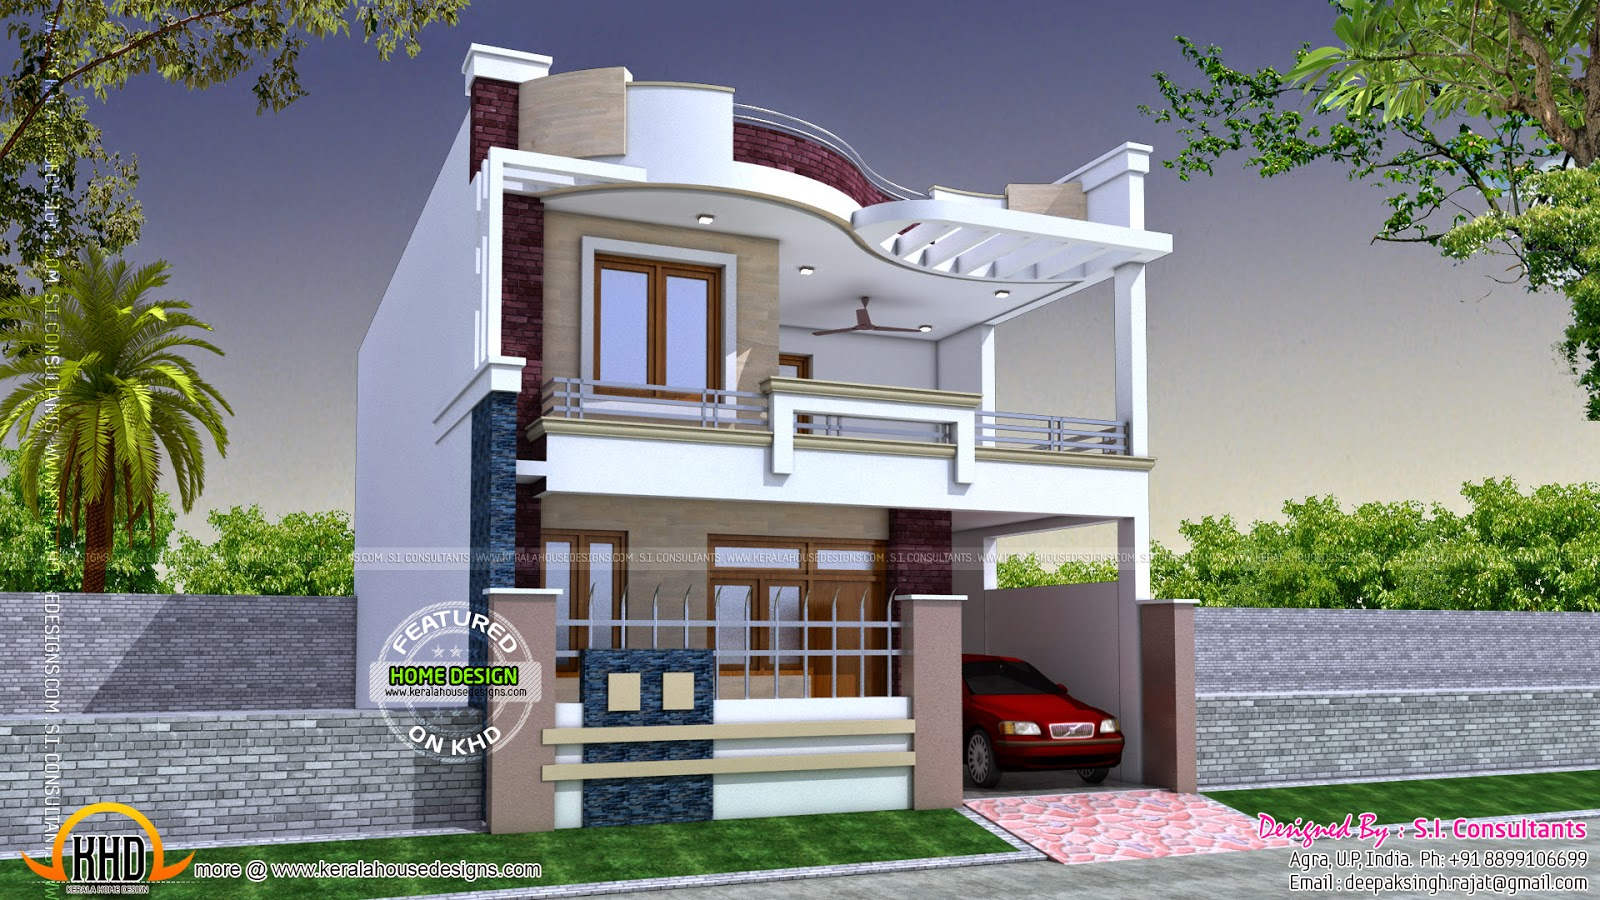 Modern indian home design kerala home design and floor plans Home design sites